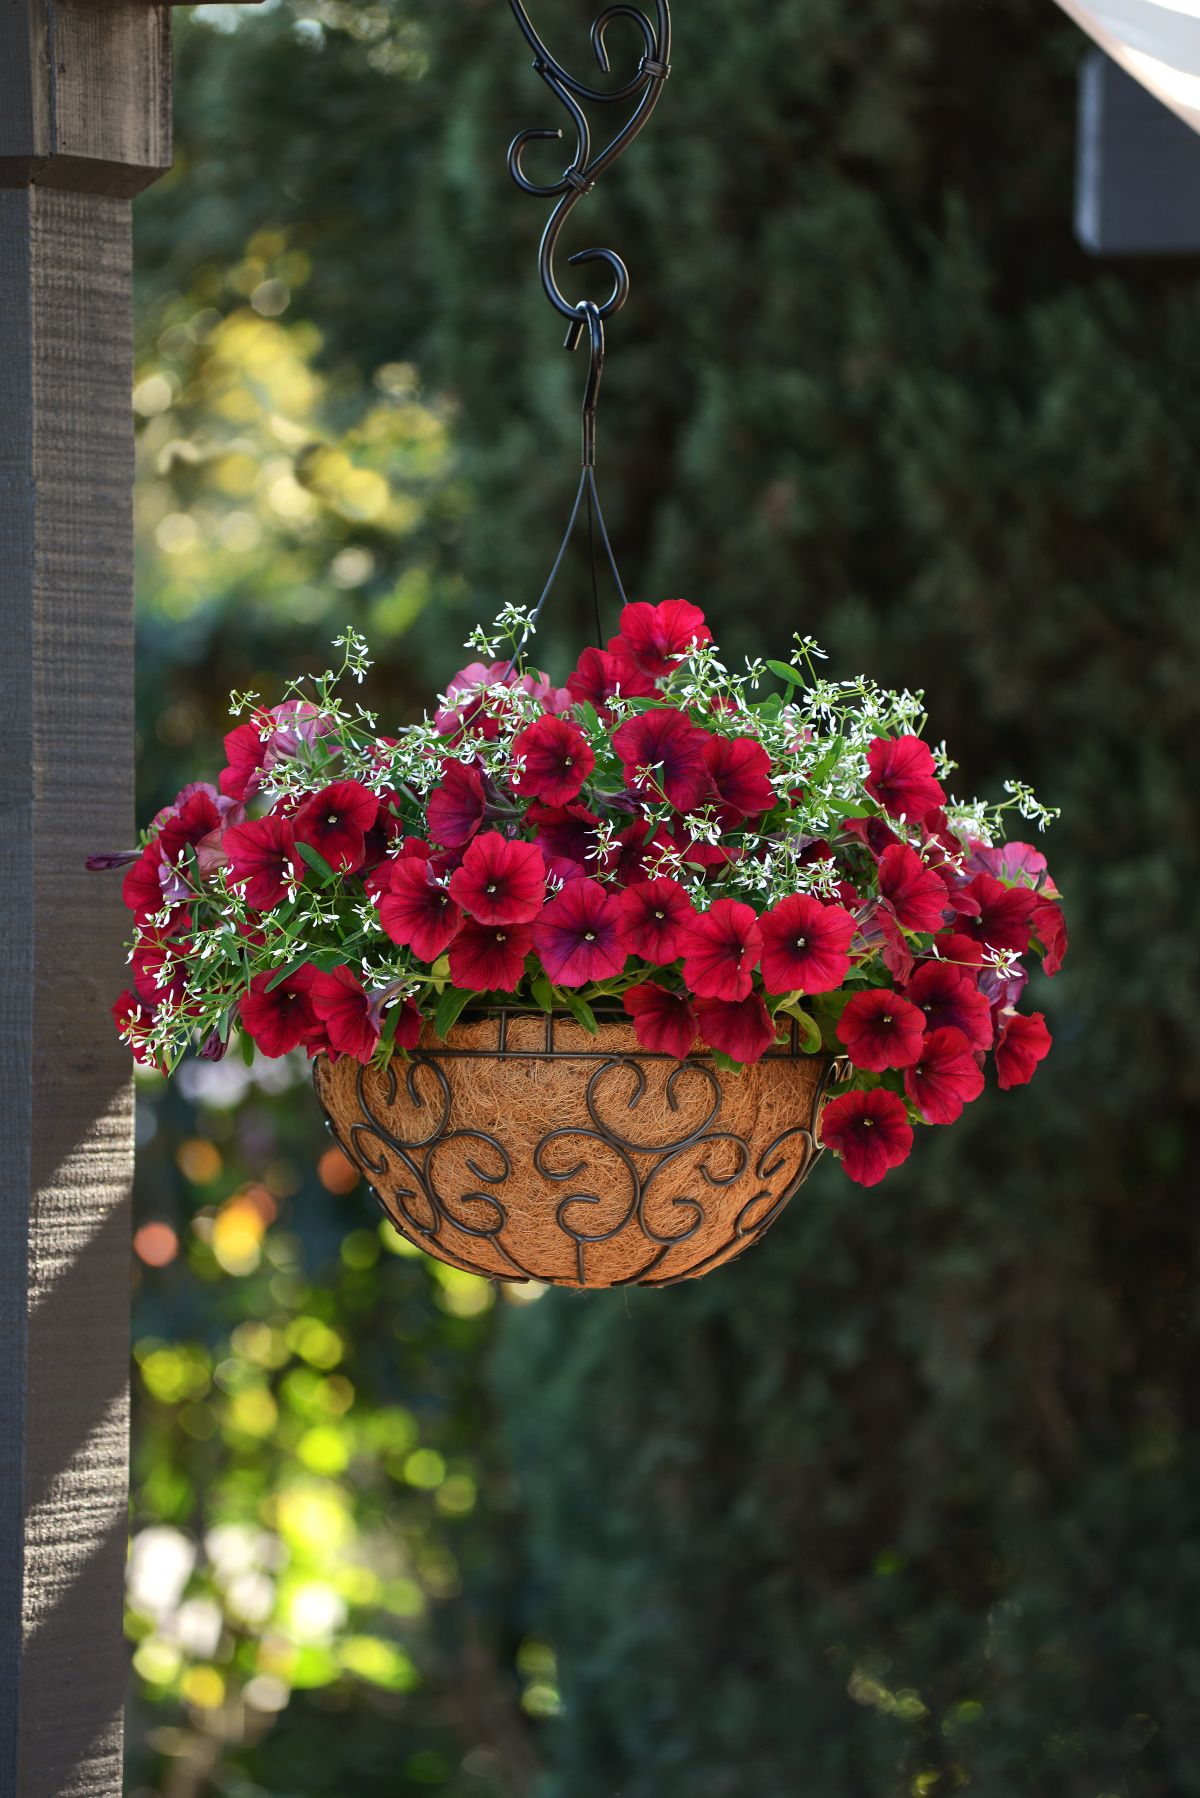 Easy Wave Red Velour Petunia | Partying in the Garden! | Pinterest ...